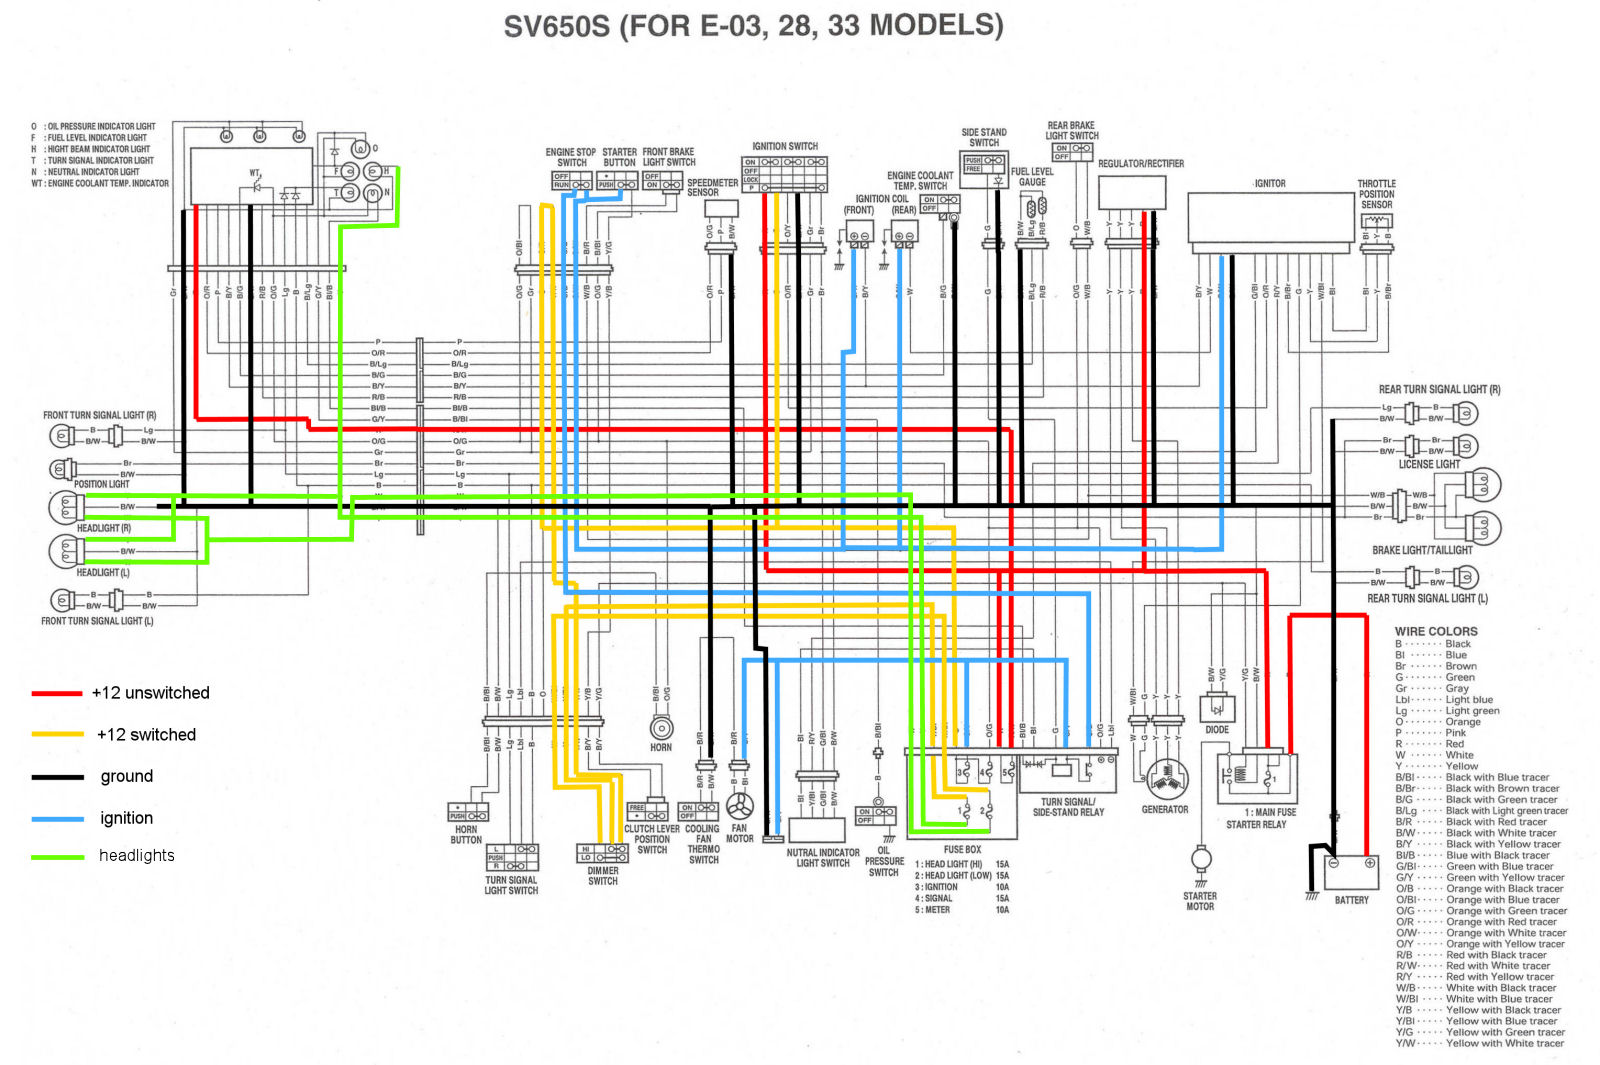 sv650 k7 wiring diagram great design of wiring diagram u2022 rh zenapparel  co Gsxr 1000 With Rim 02 Gsxr 600 Fairings